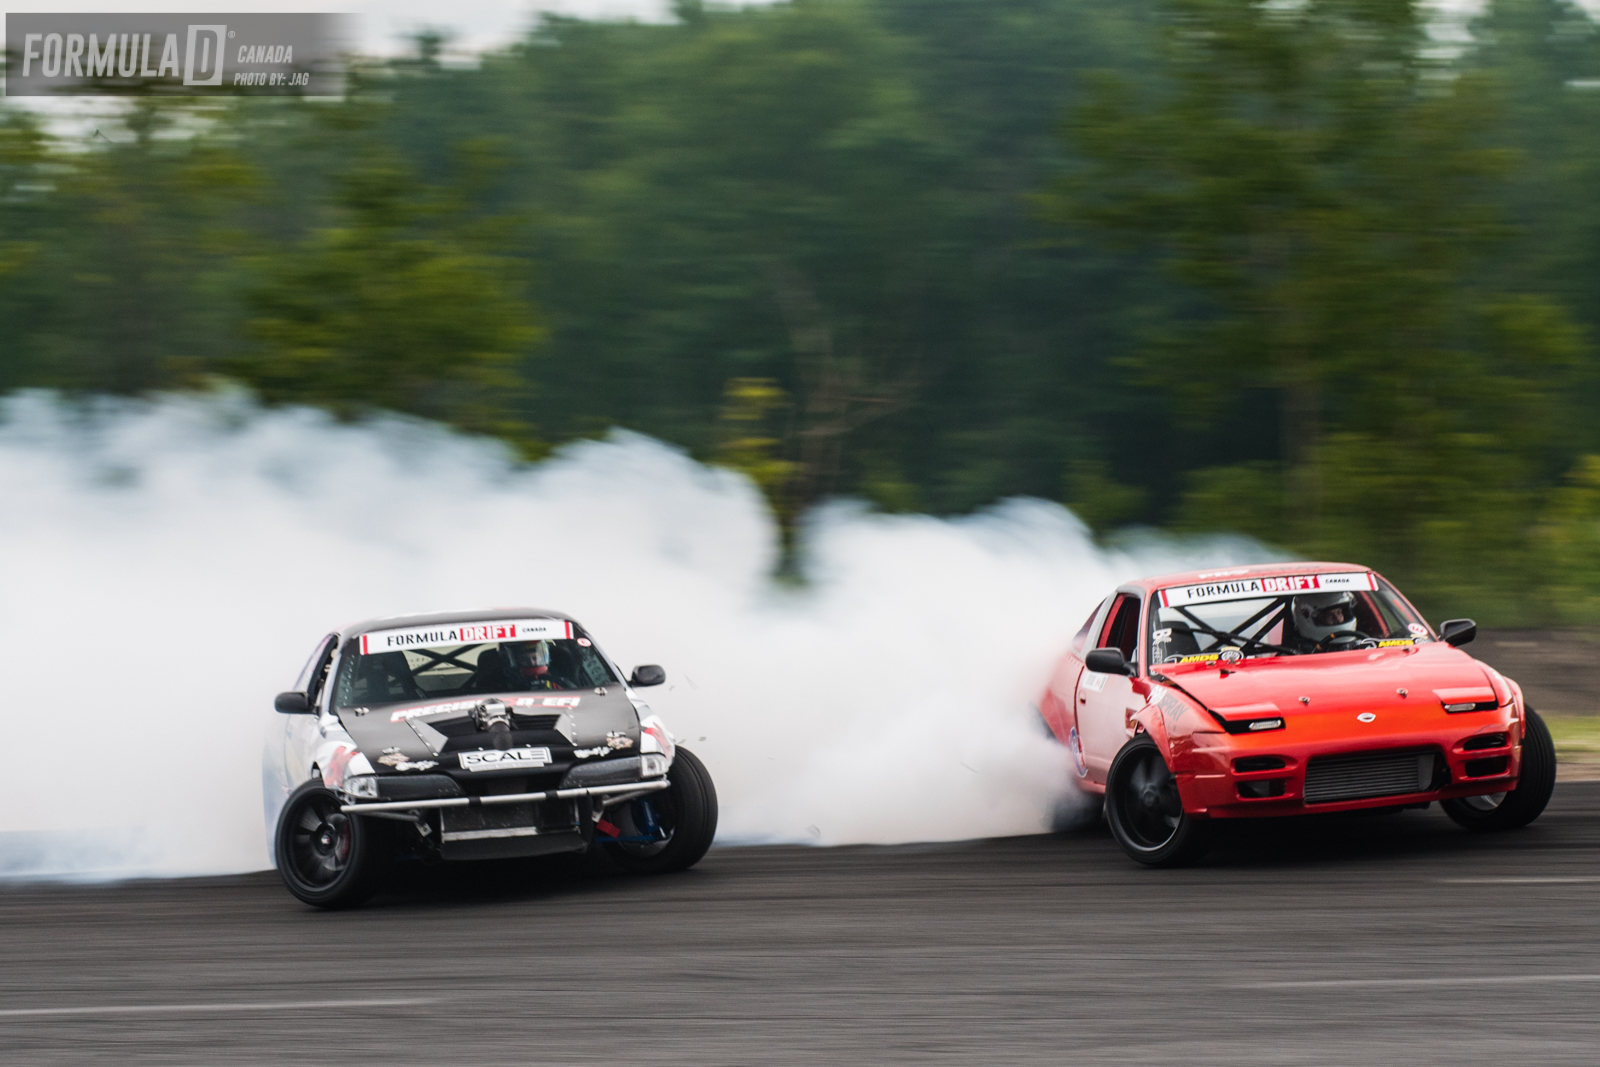 This time it was a great battle between both drivers..